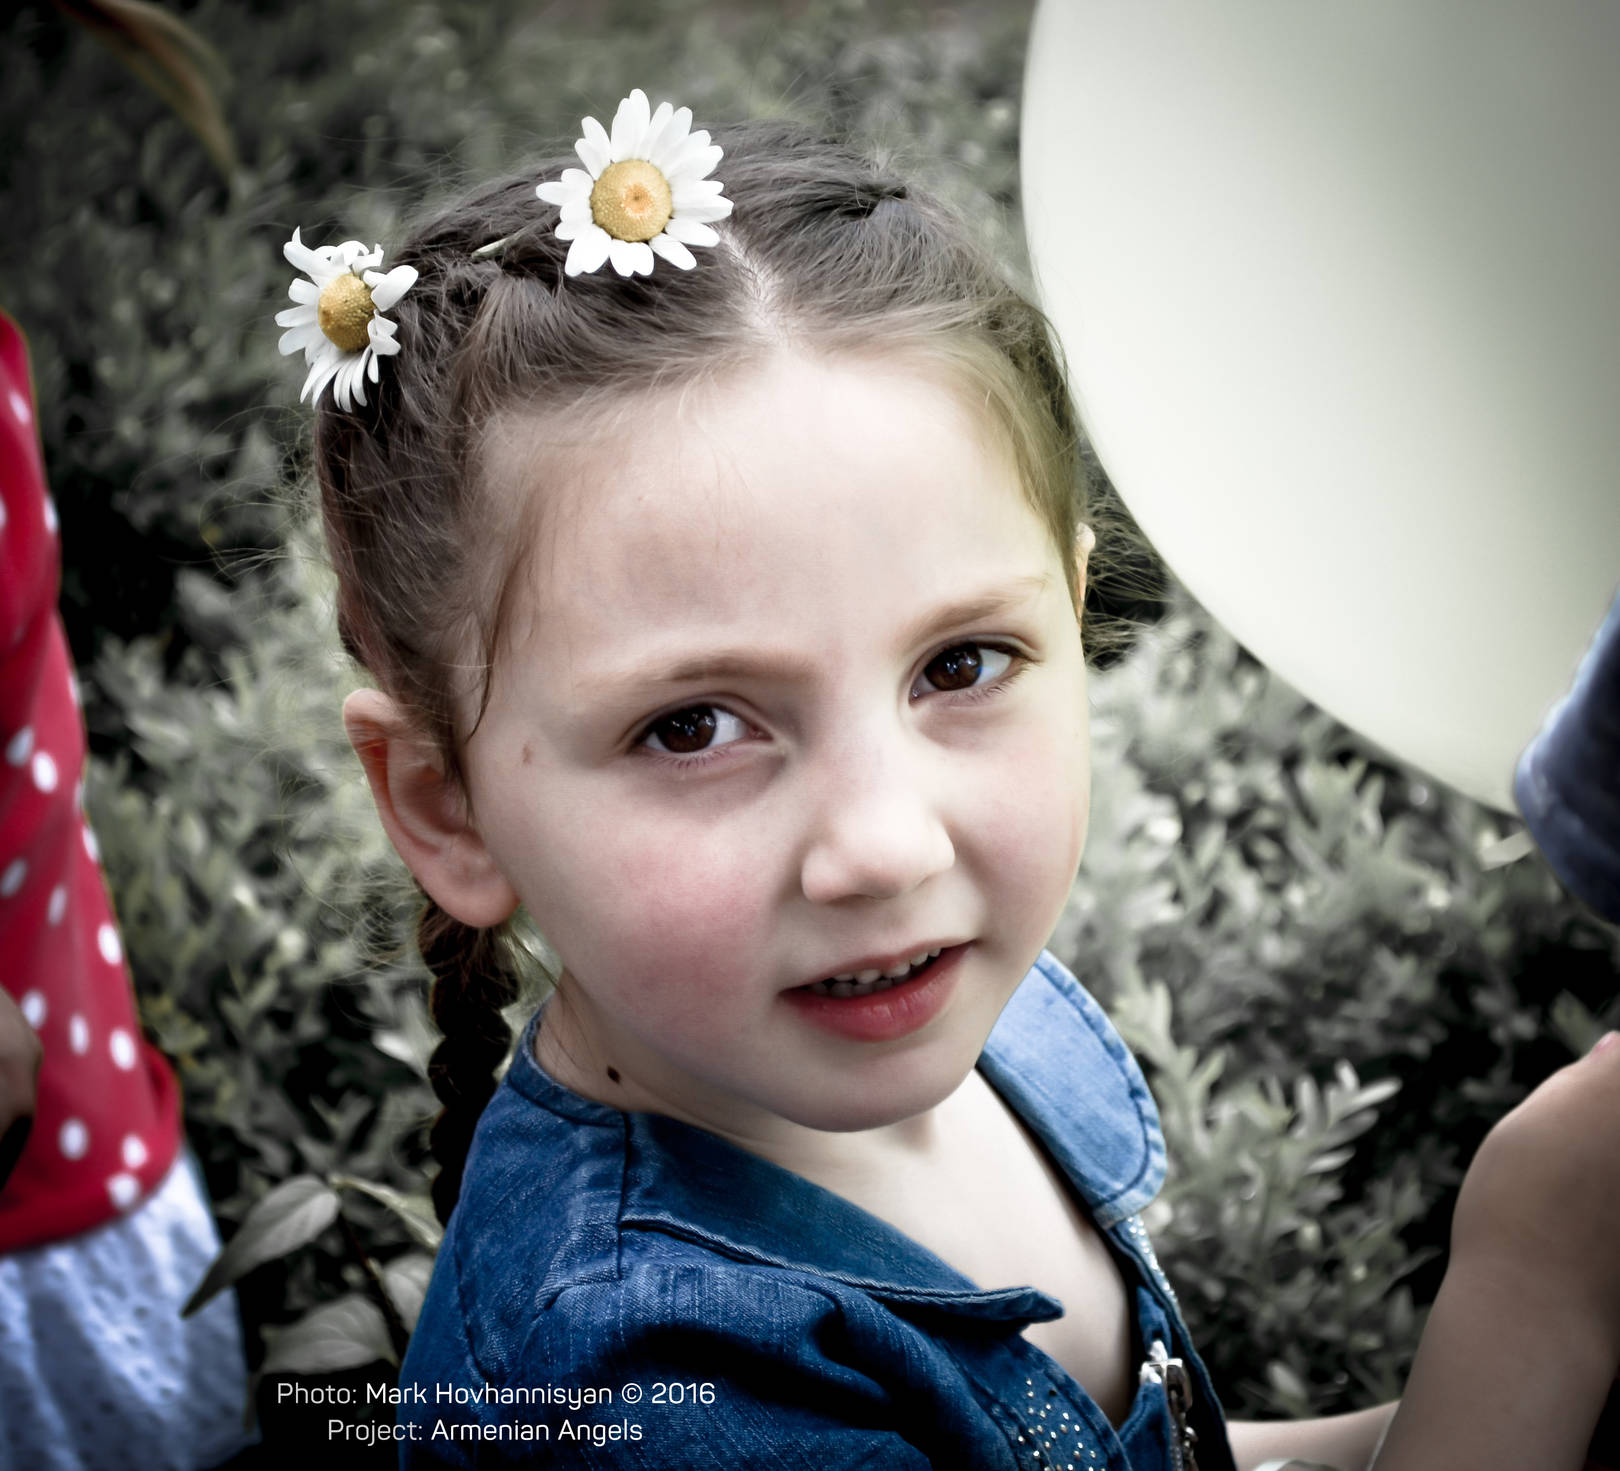 Project: #ArmenianAngels